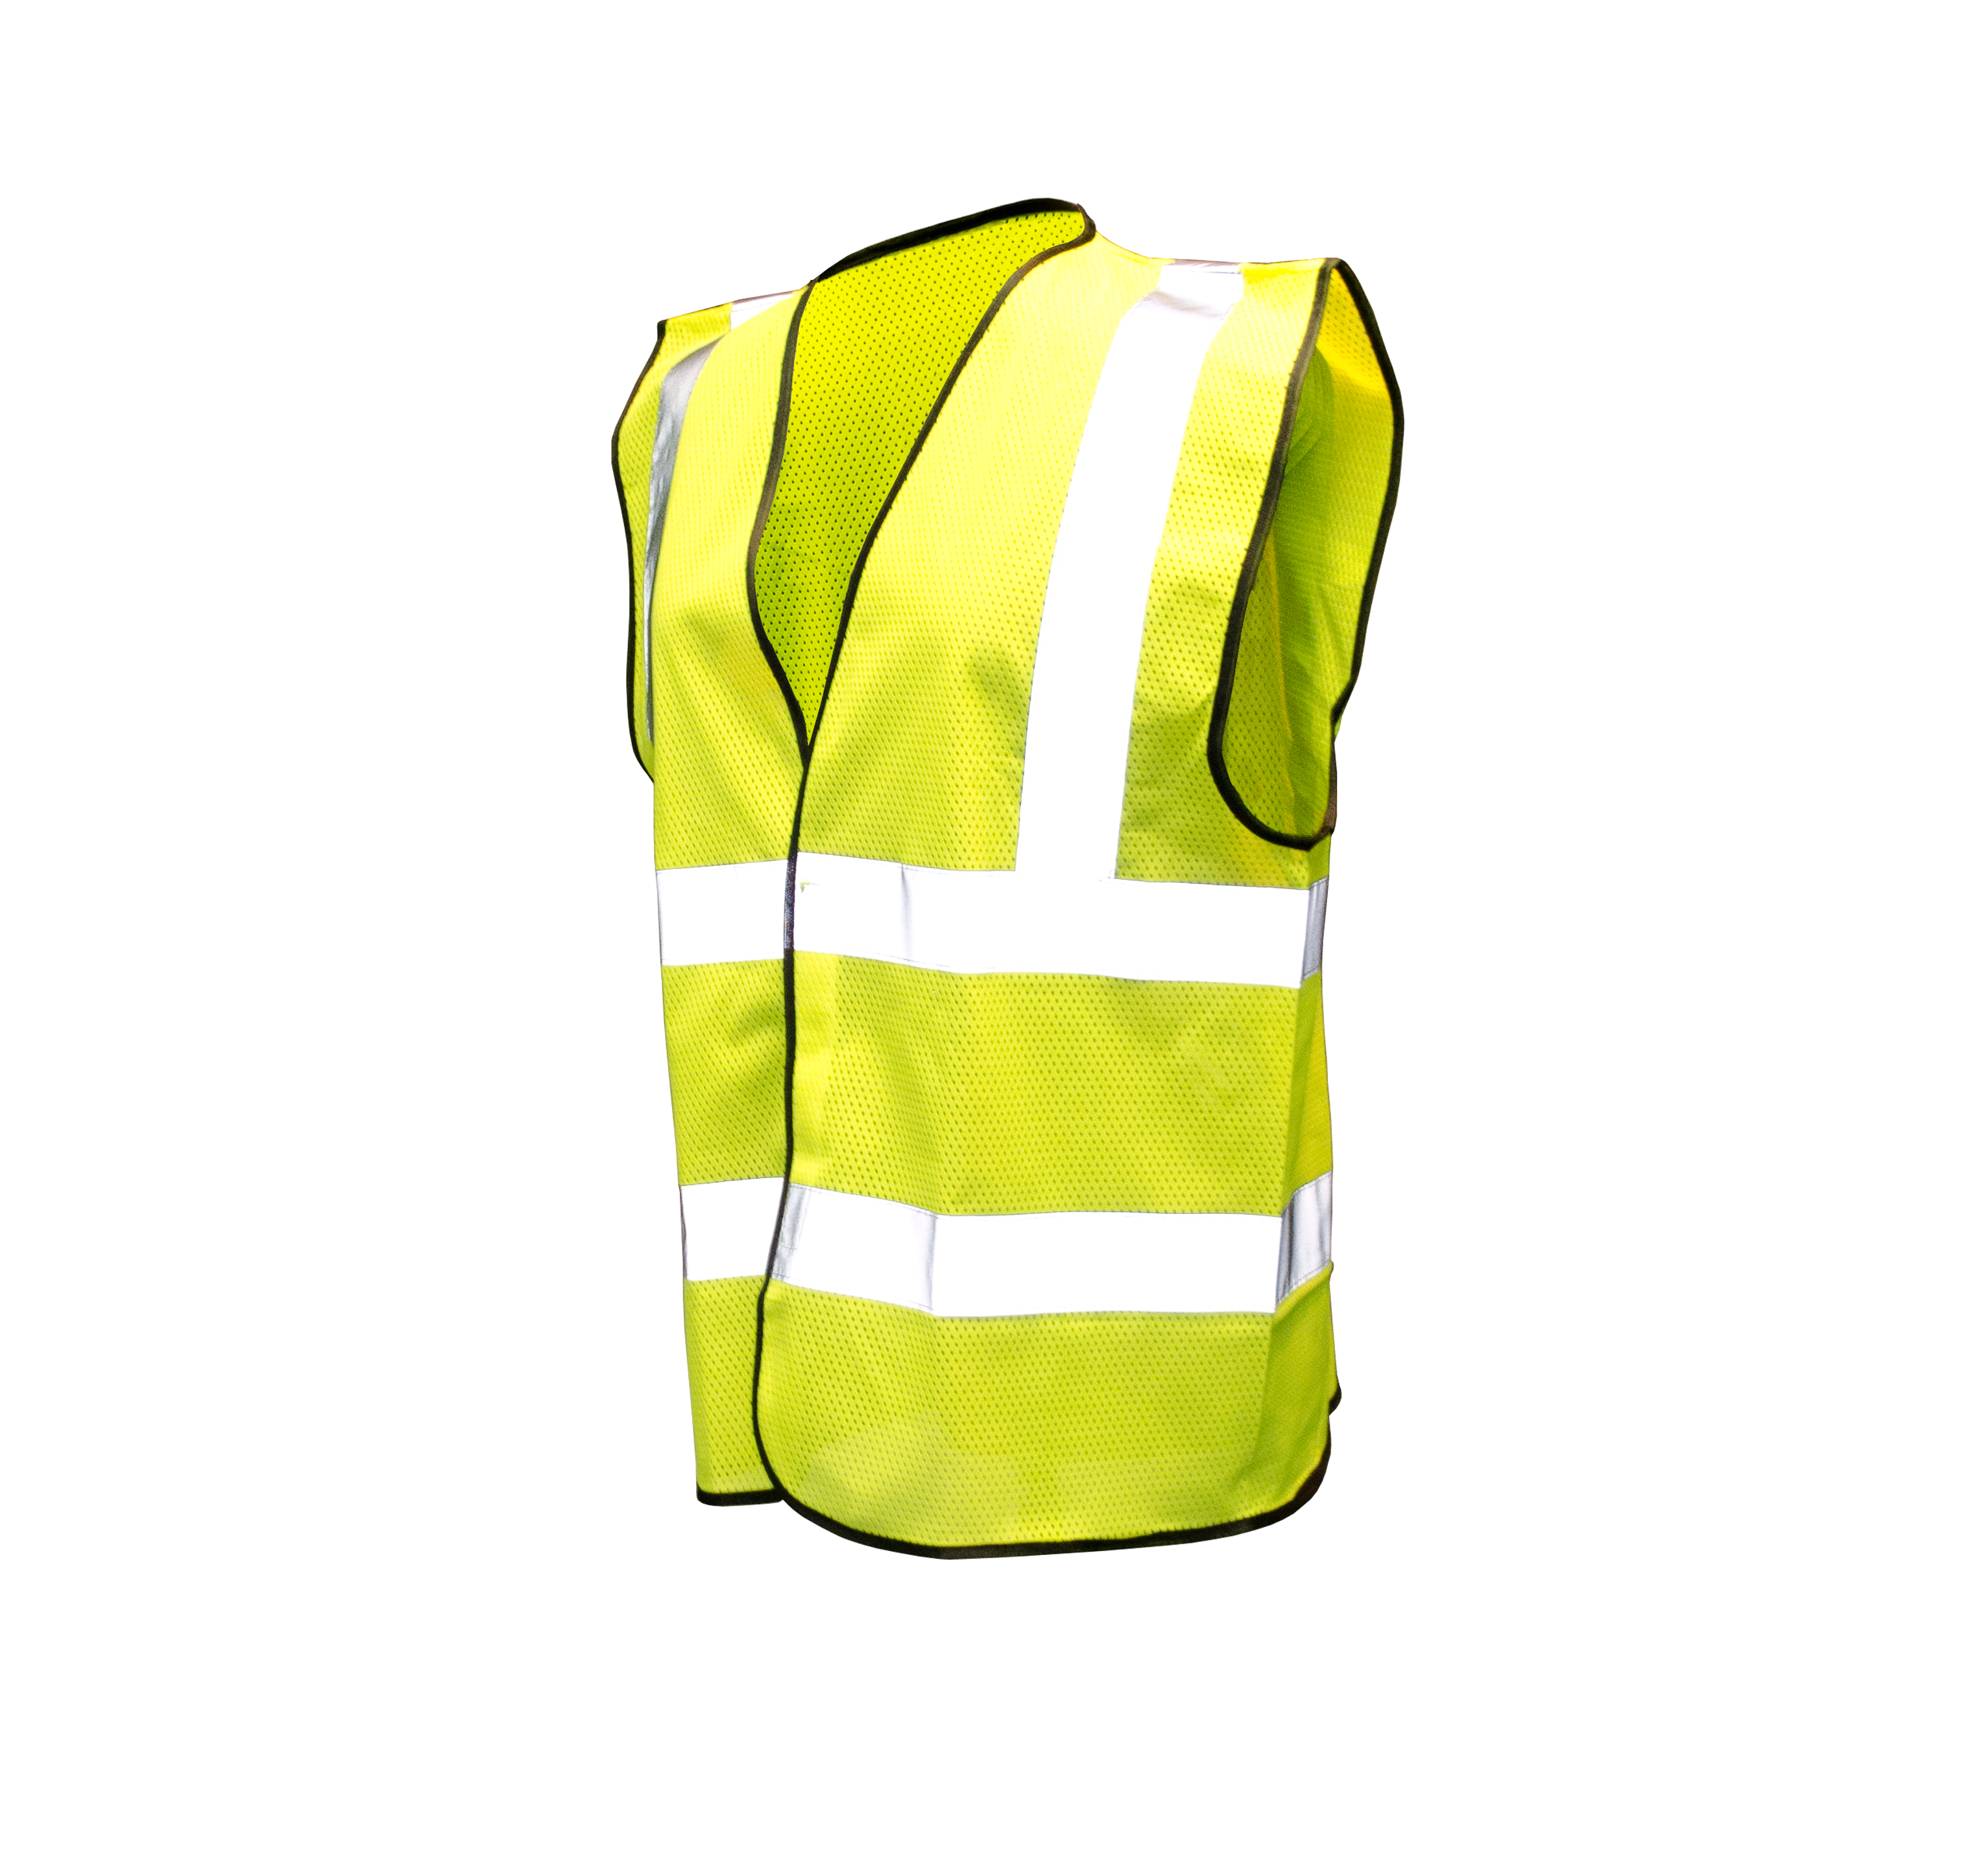 One Pack's High Visibility Safety Vest